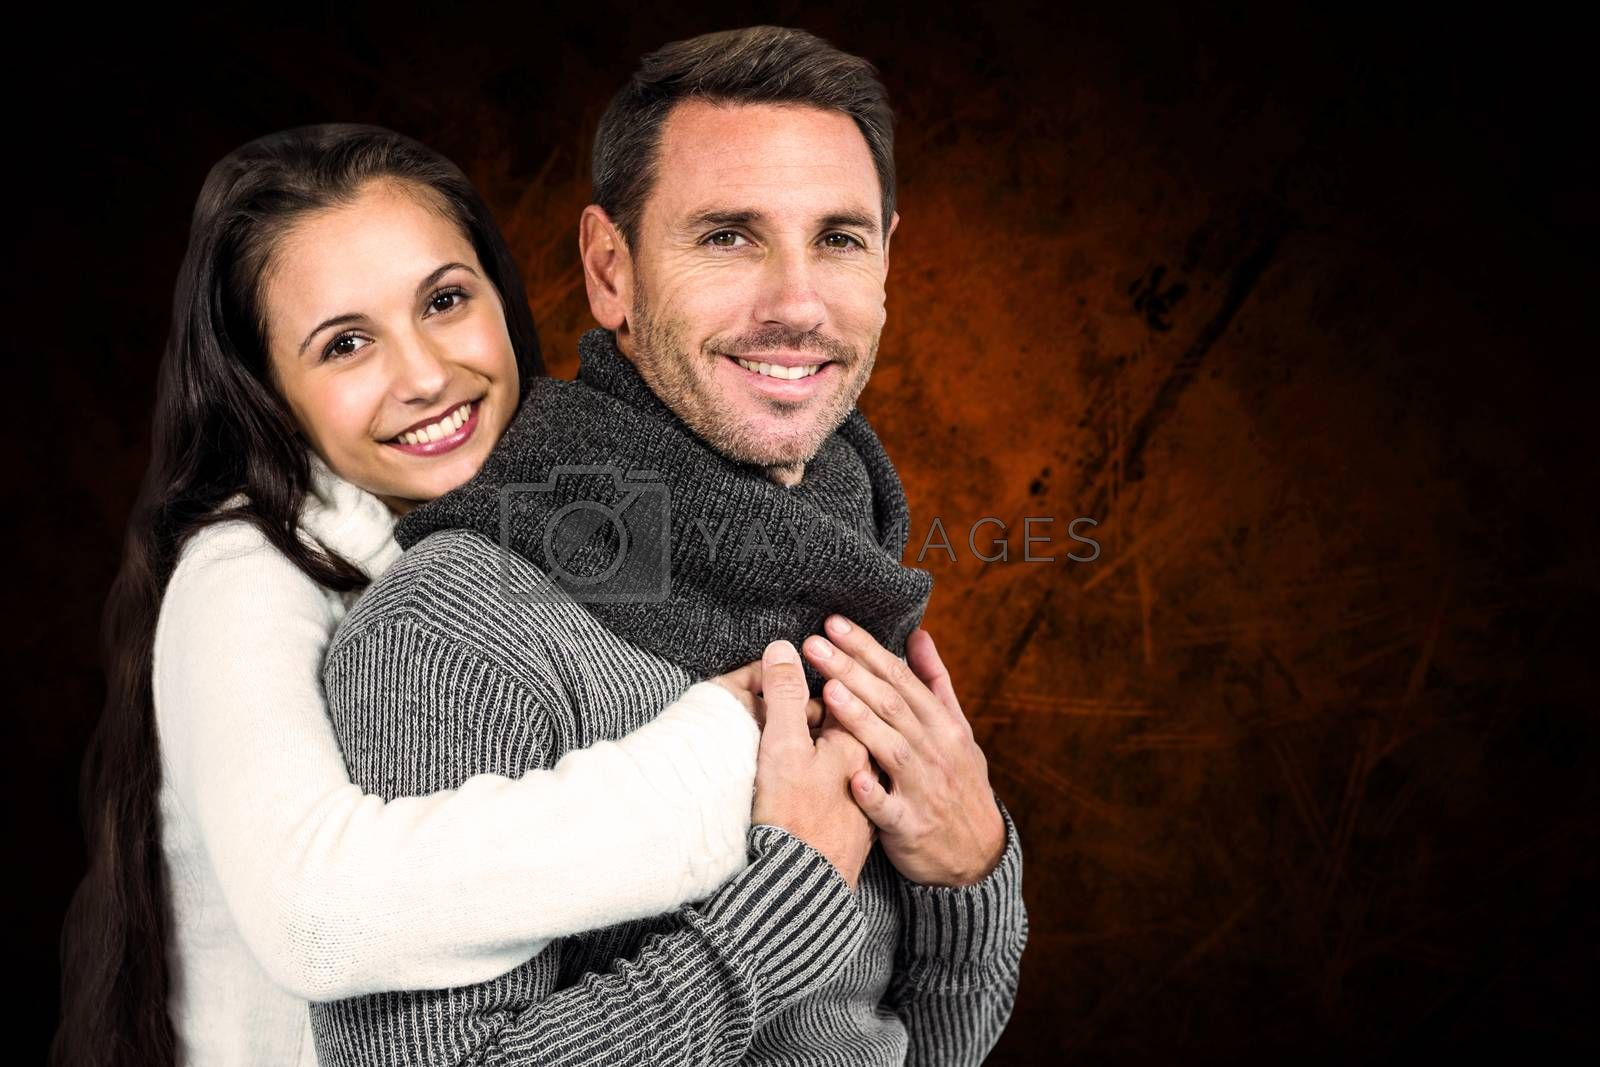 Smiling couple hugging and looking at camera against shades of brown